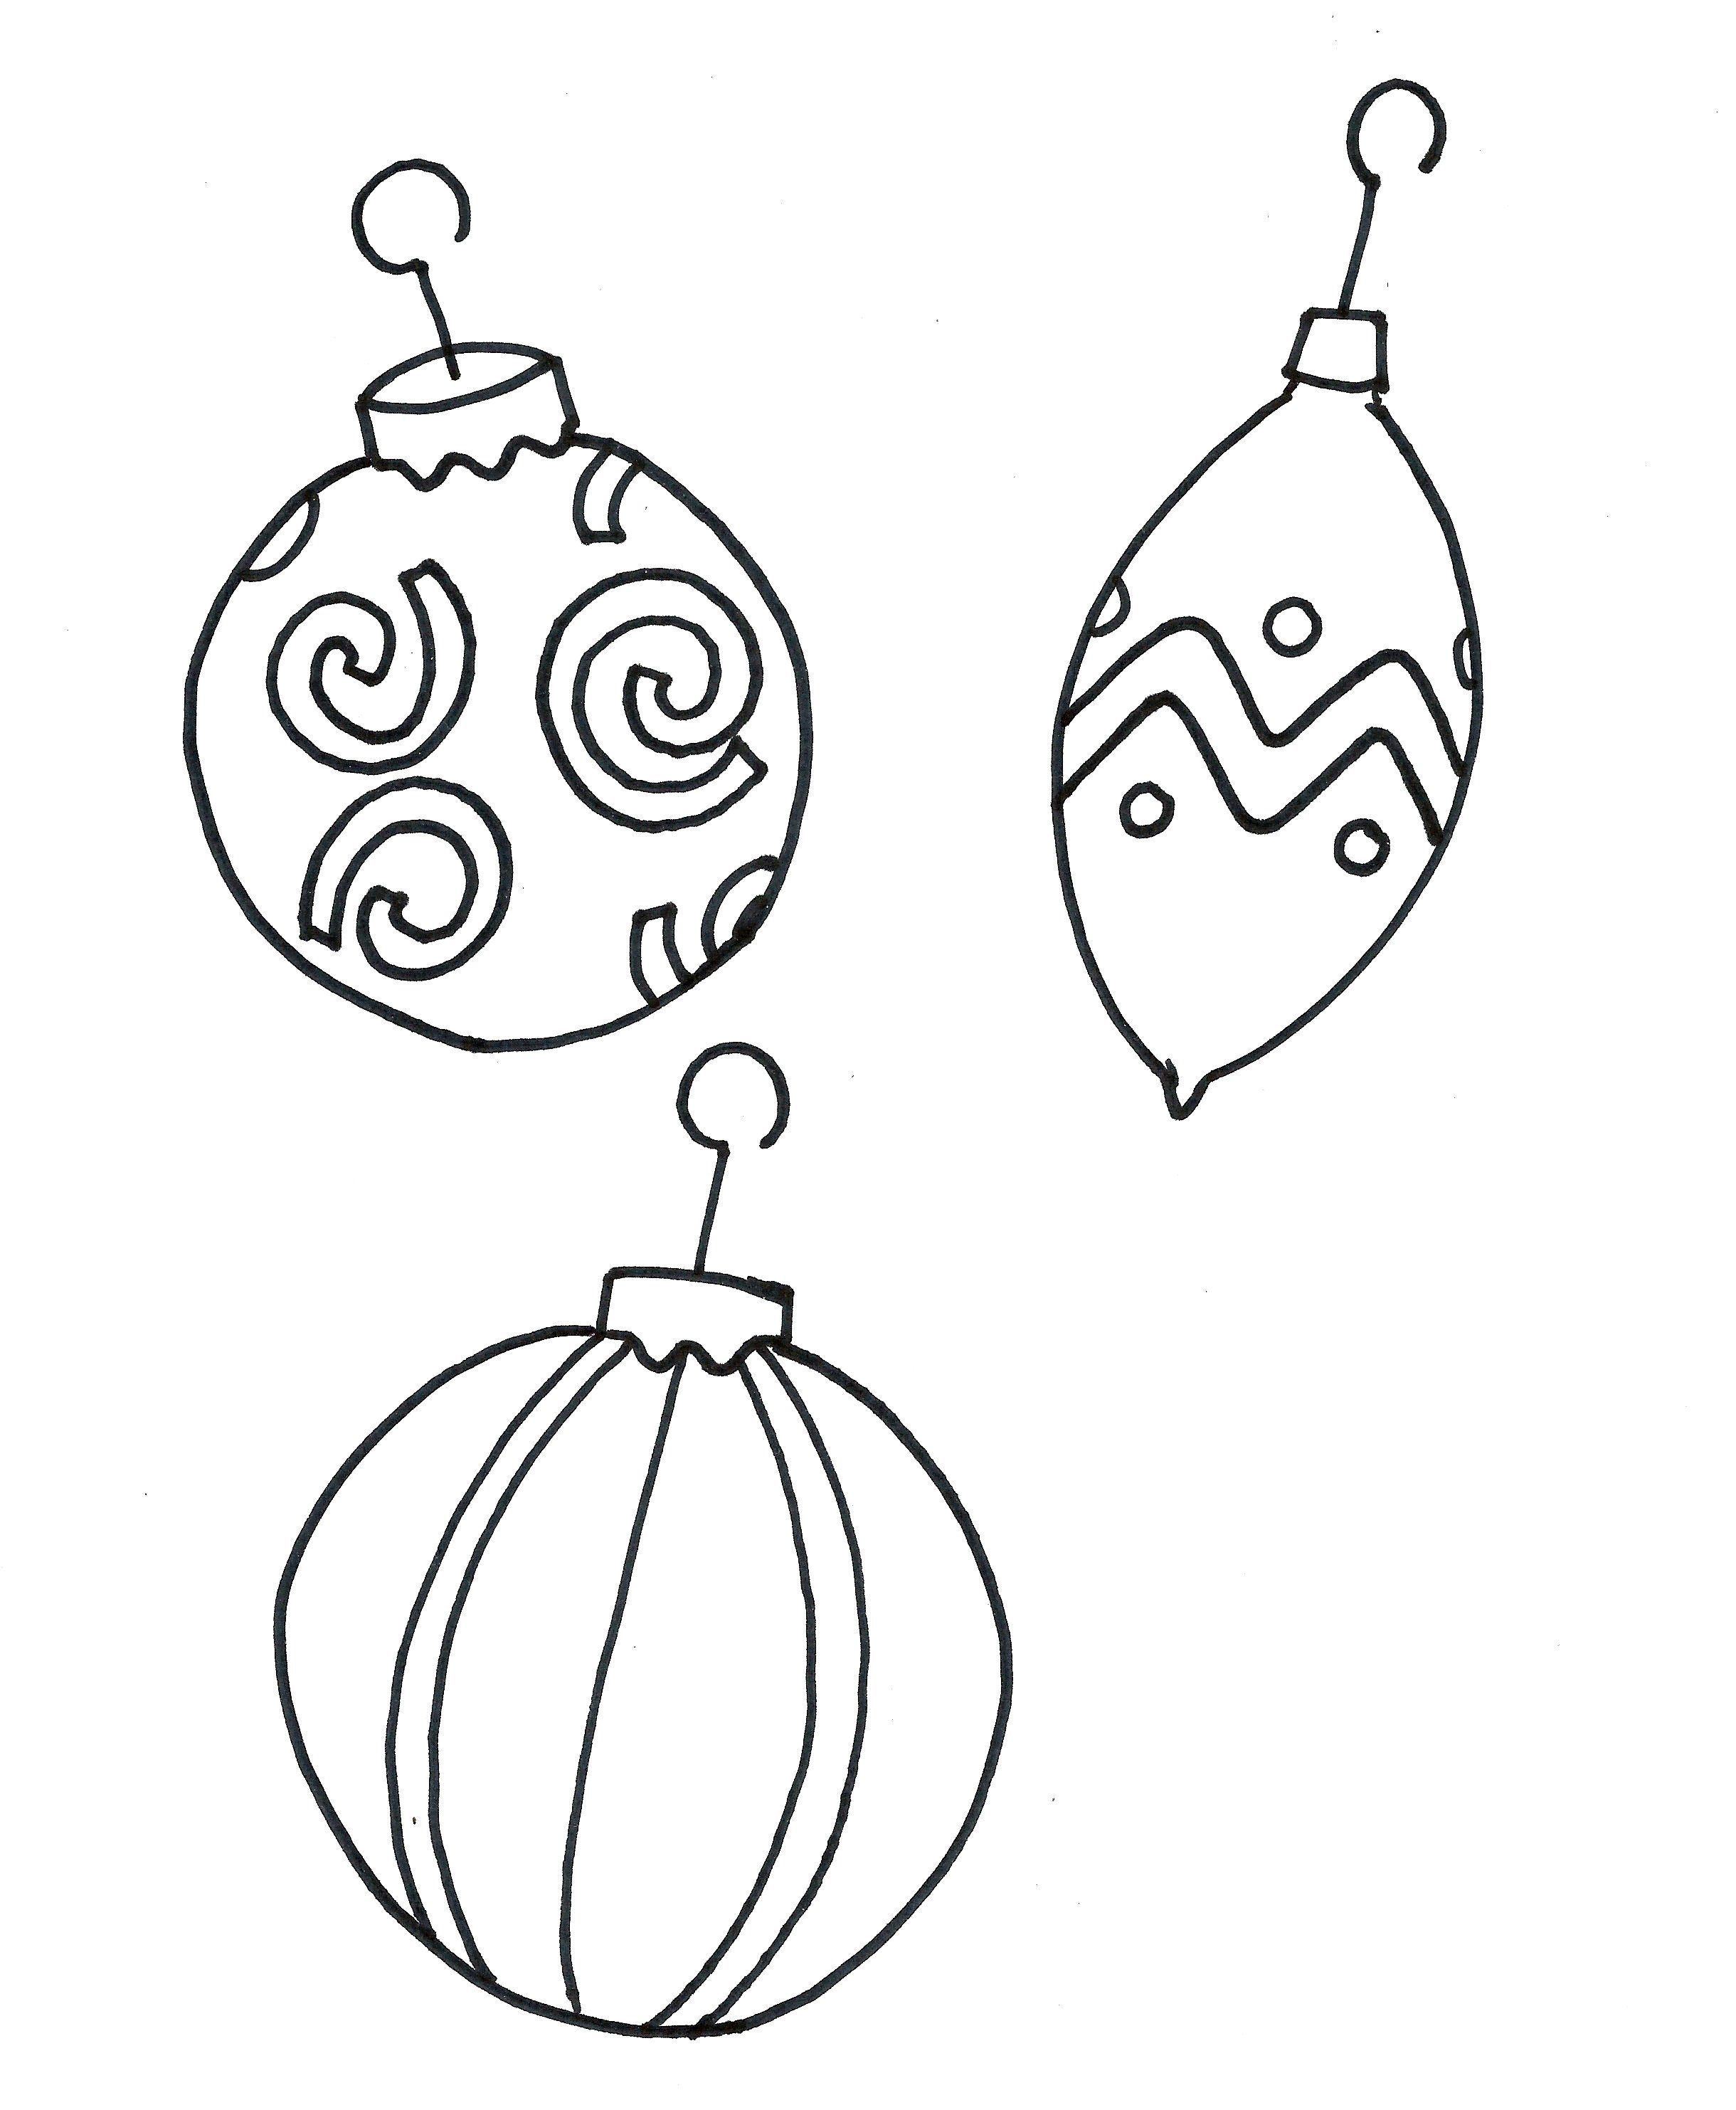 Printable Coloring Pages Christmas Ornament Free Christmas Ornament Template Christmas Ornament Coloring Page Printable Christmas Decorations